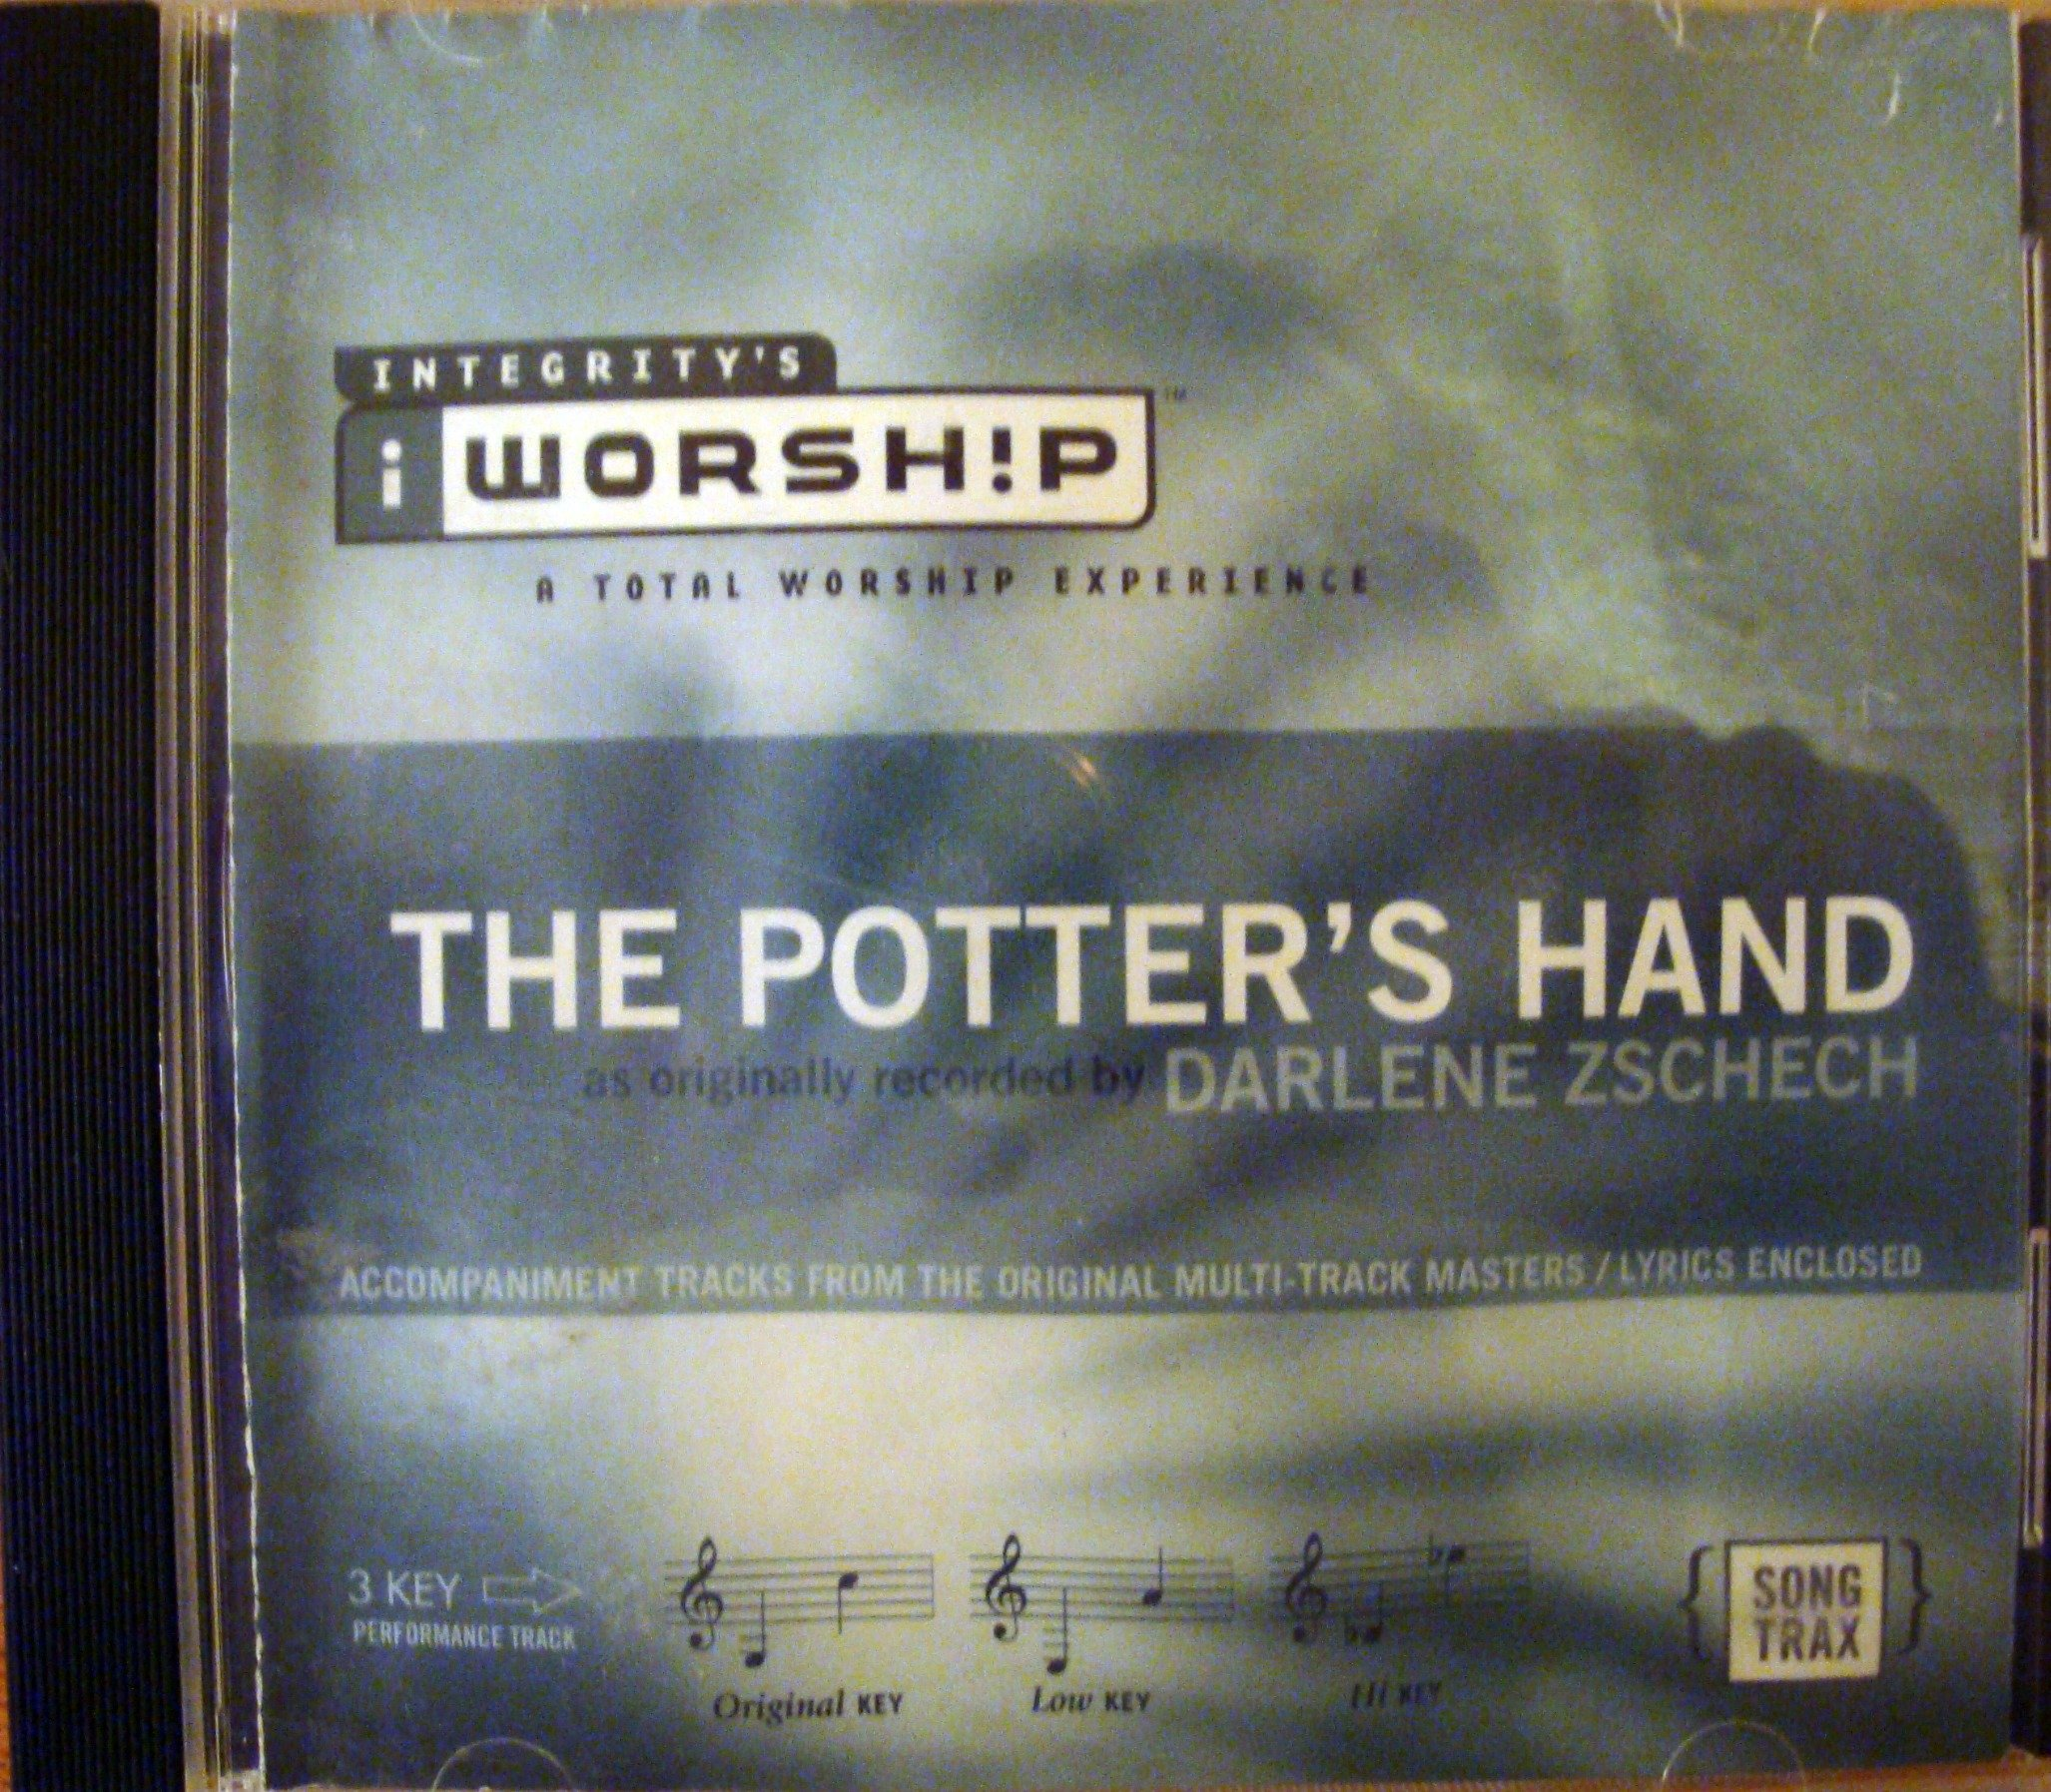 The Potter's Hand [Performance/Accompaniment Track]